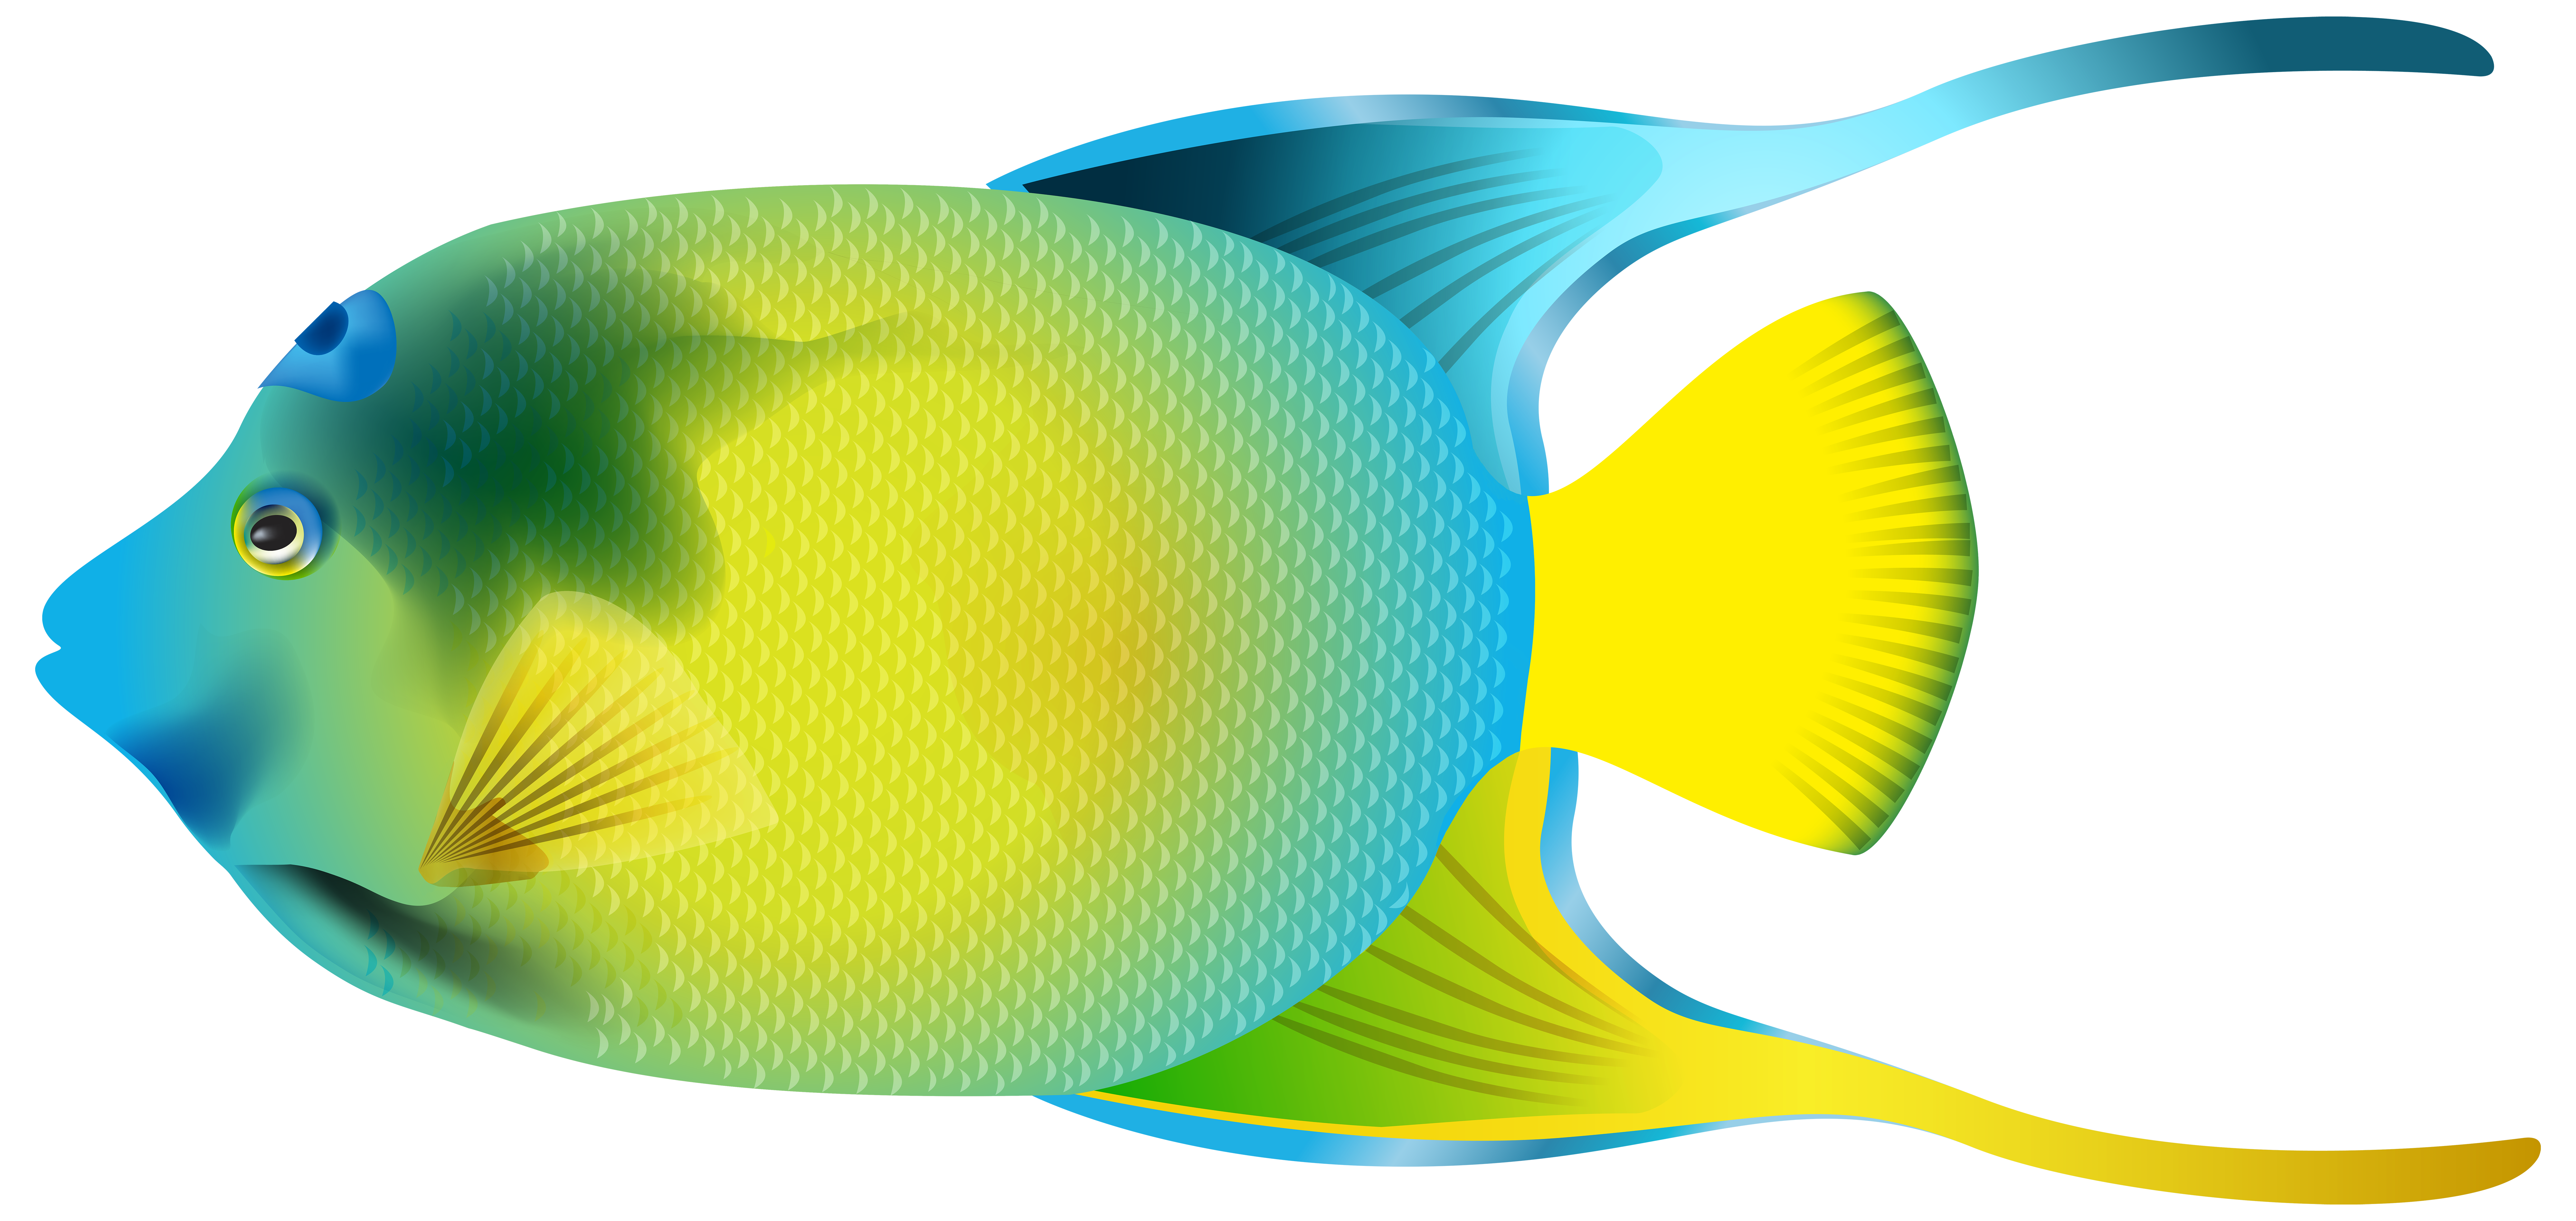 8000x3792 Queen Angelfish Png Transparent Clip Art Imageu200b Gallery